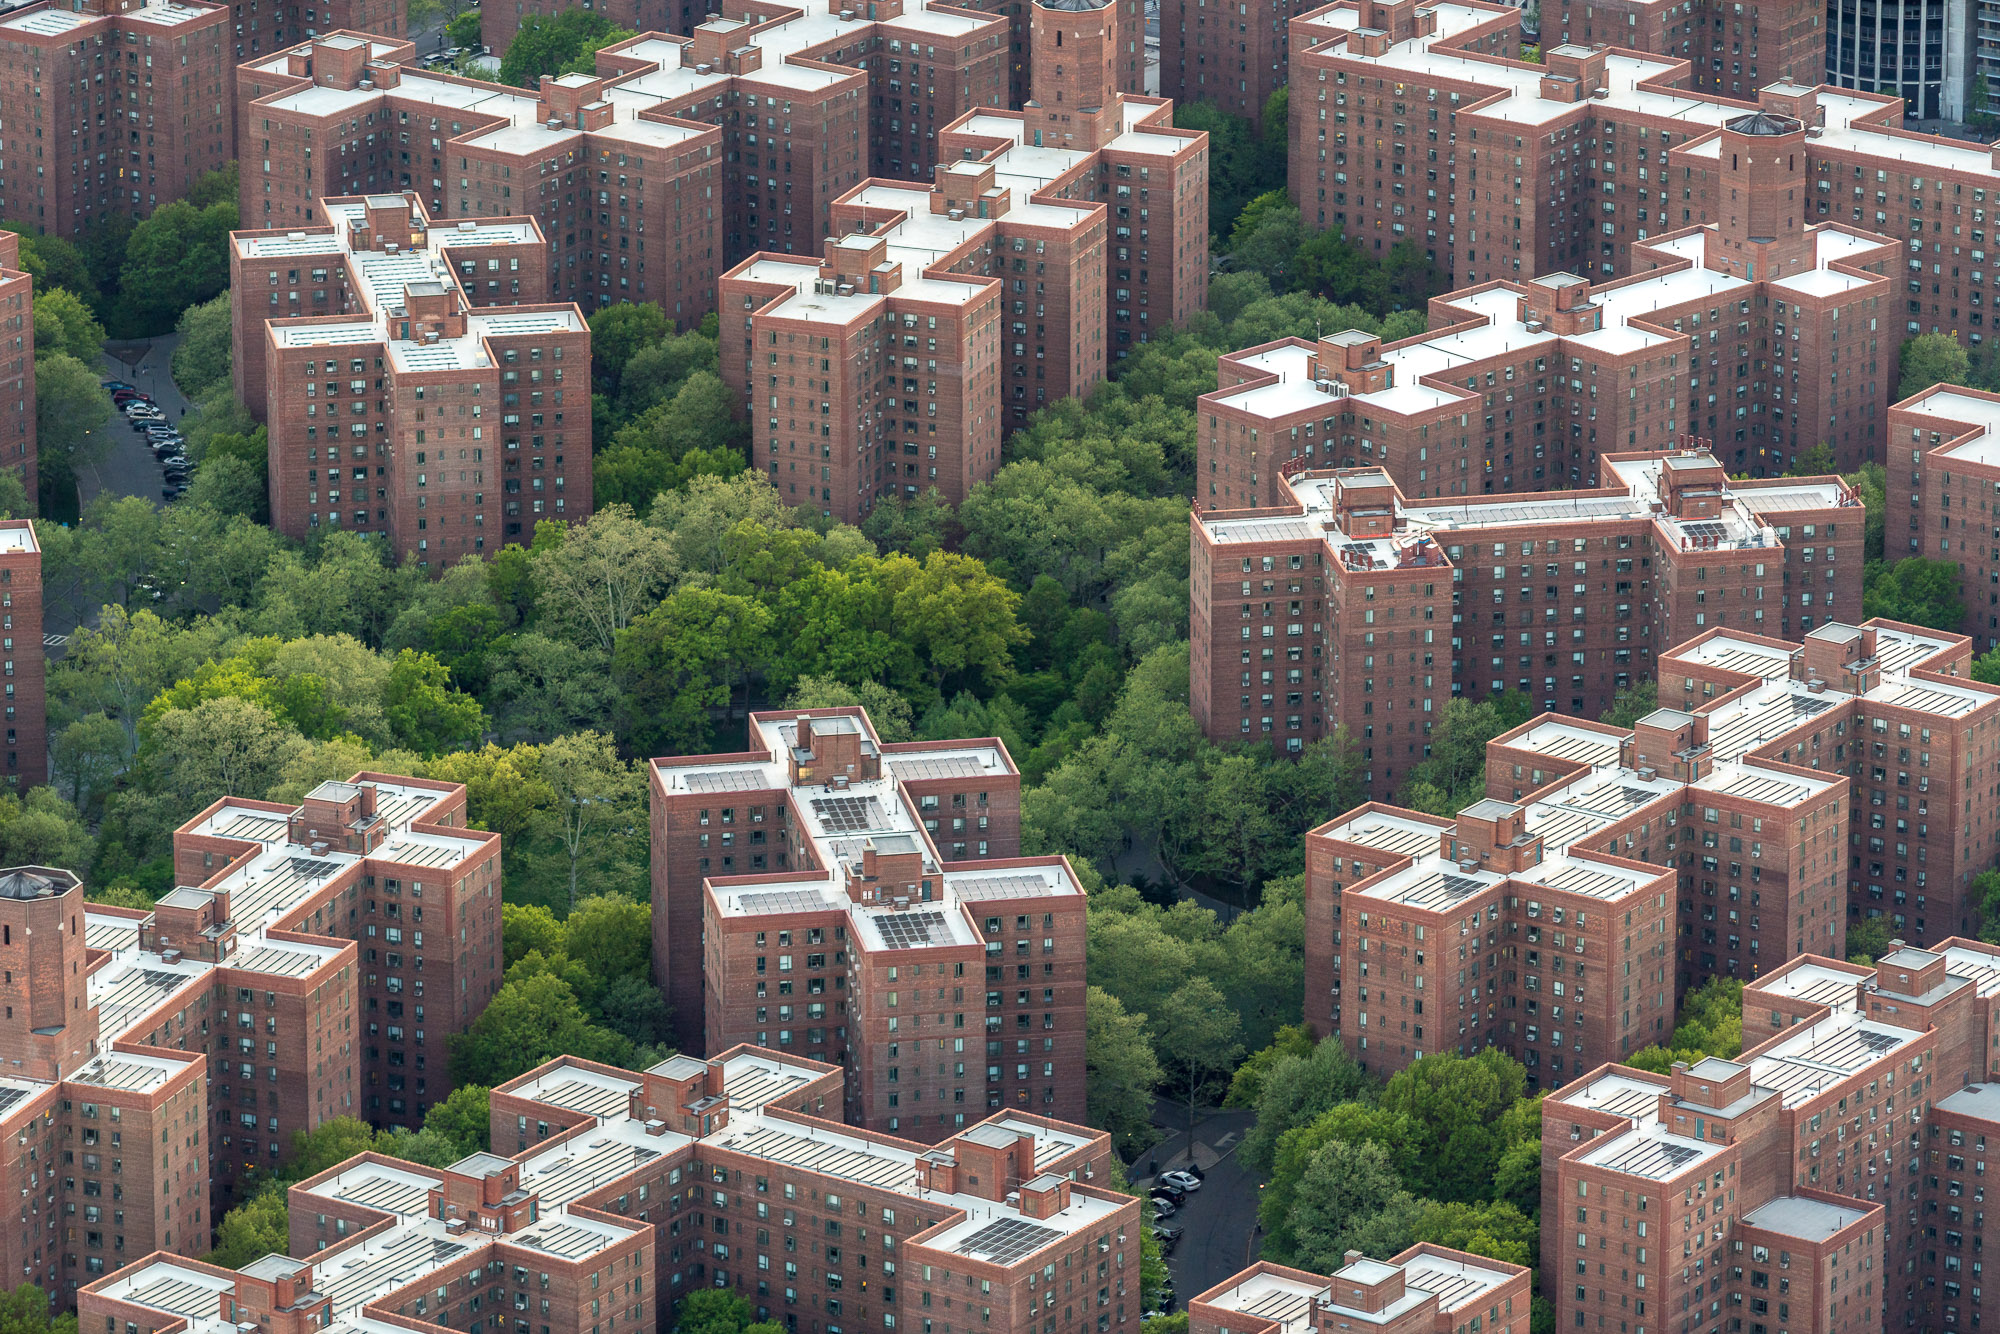 An aerial view of apartment buildings and trees.